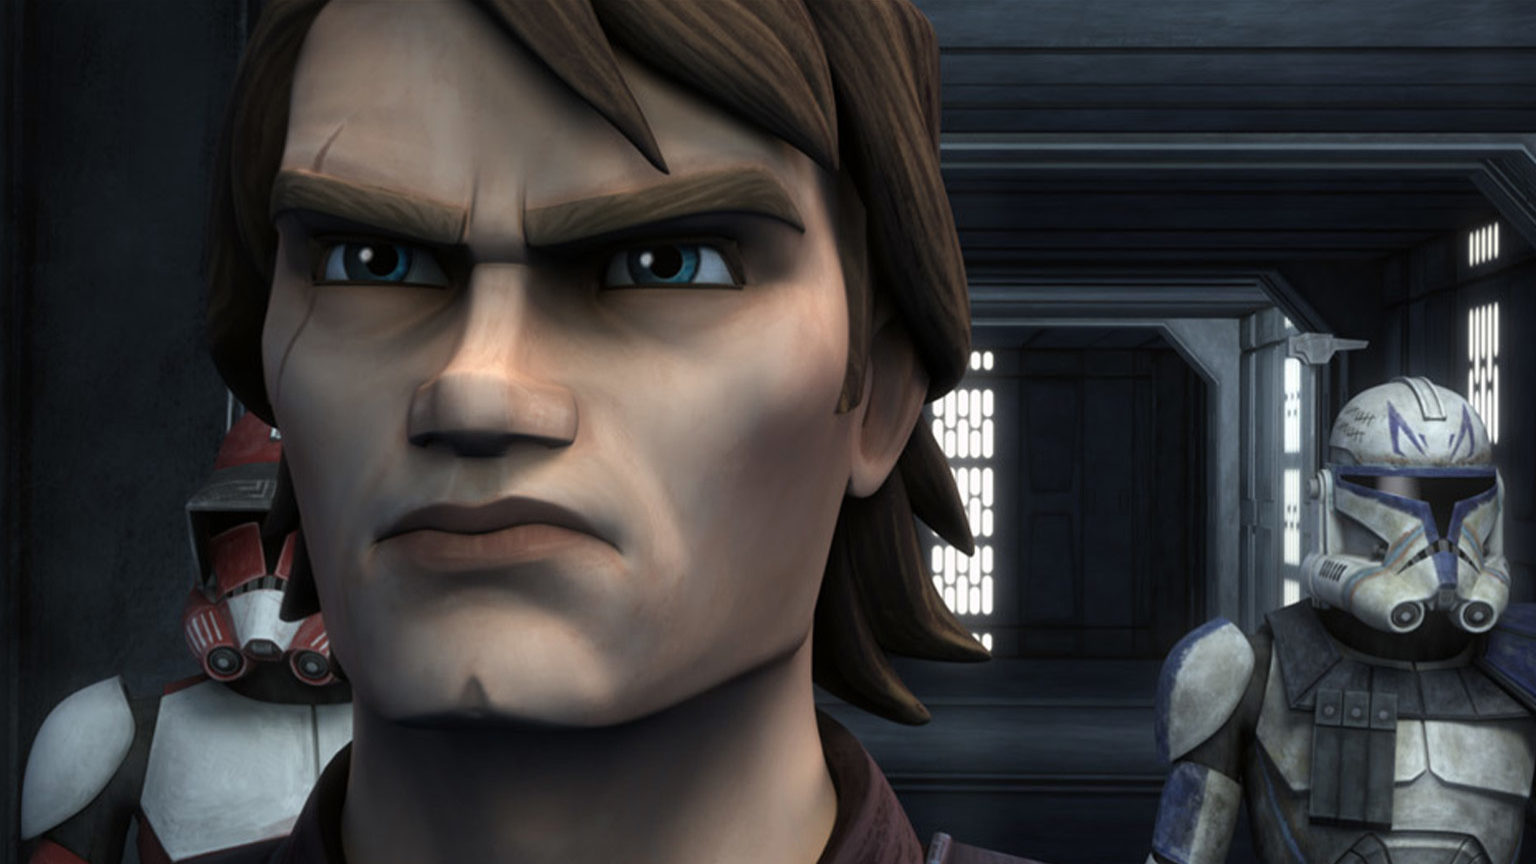 Our Favorite Moments from Star Wars: The Clone Wars